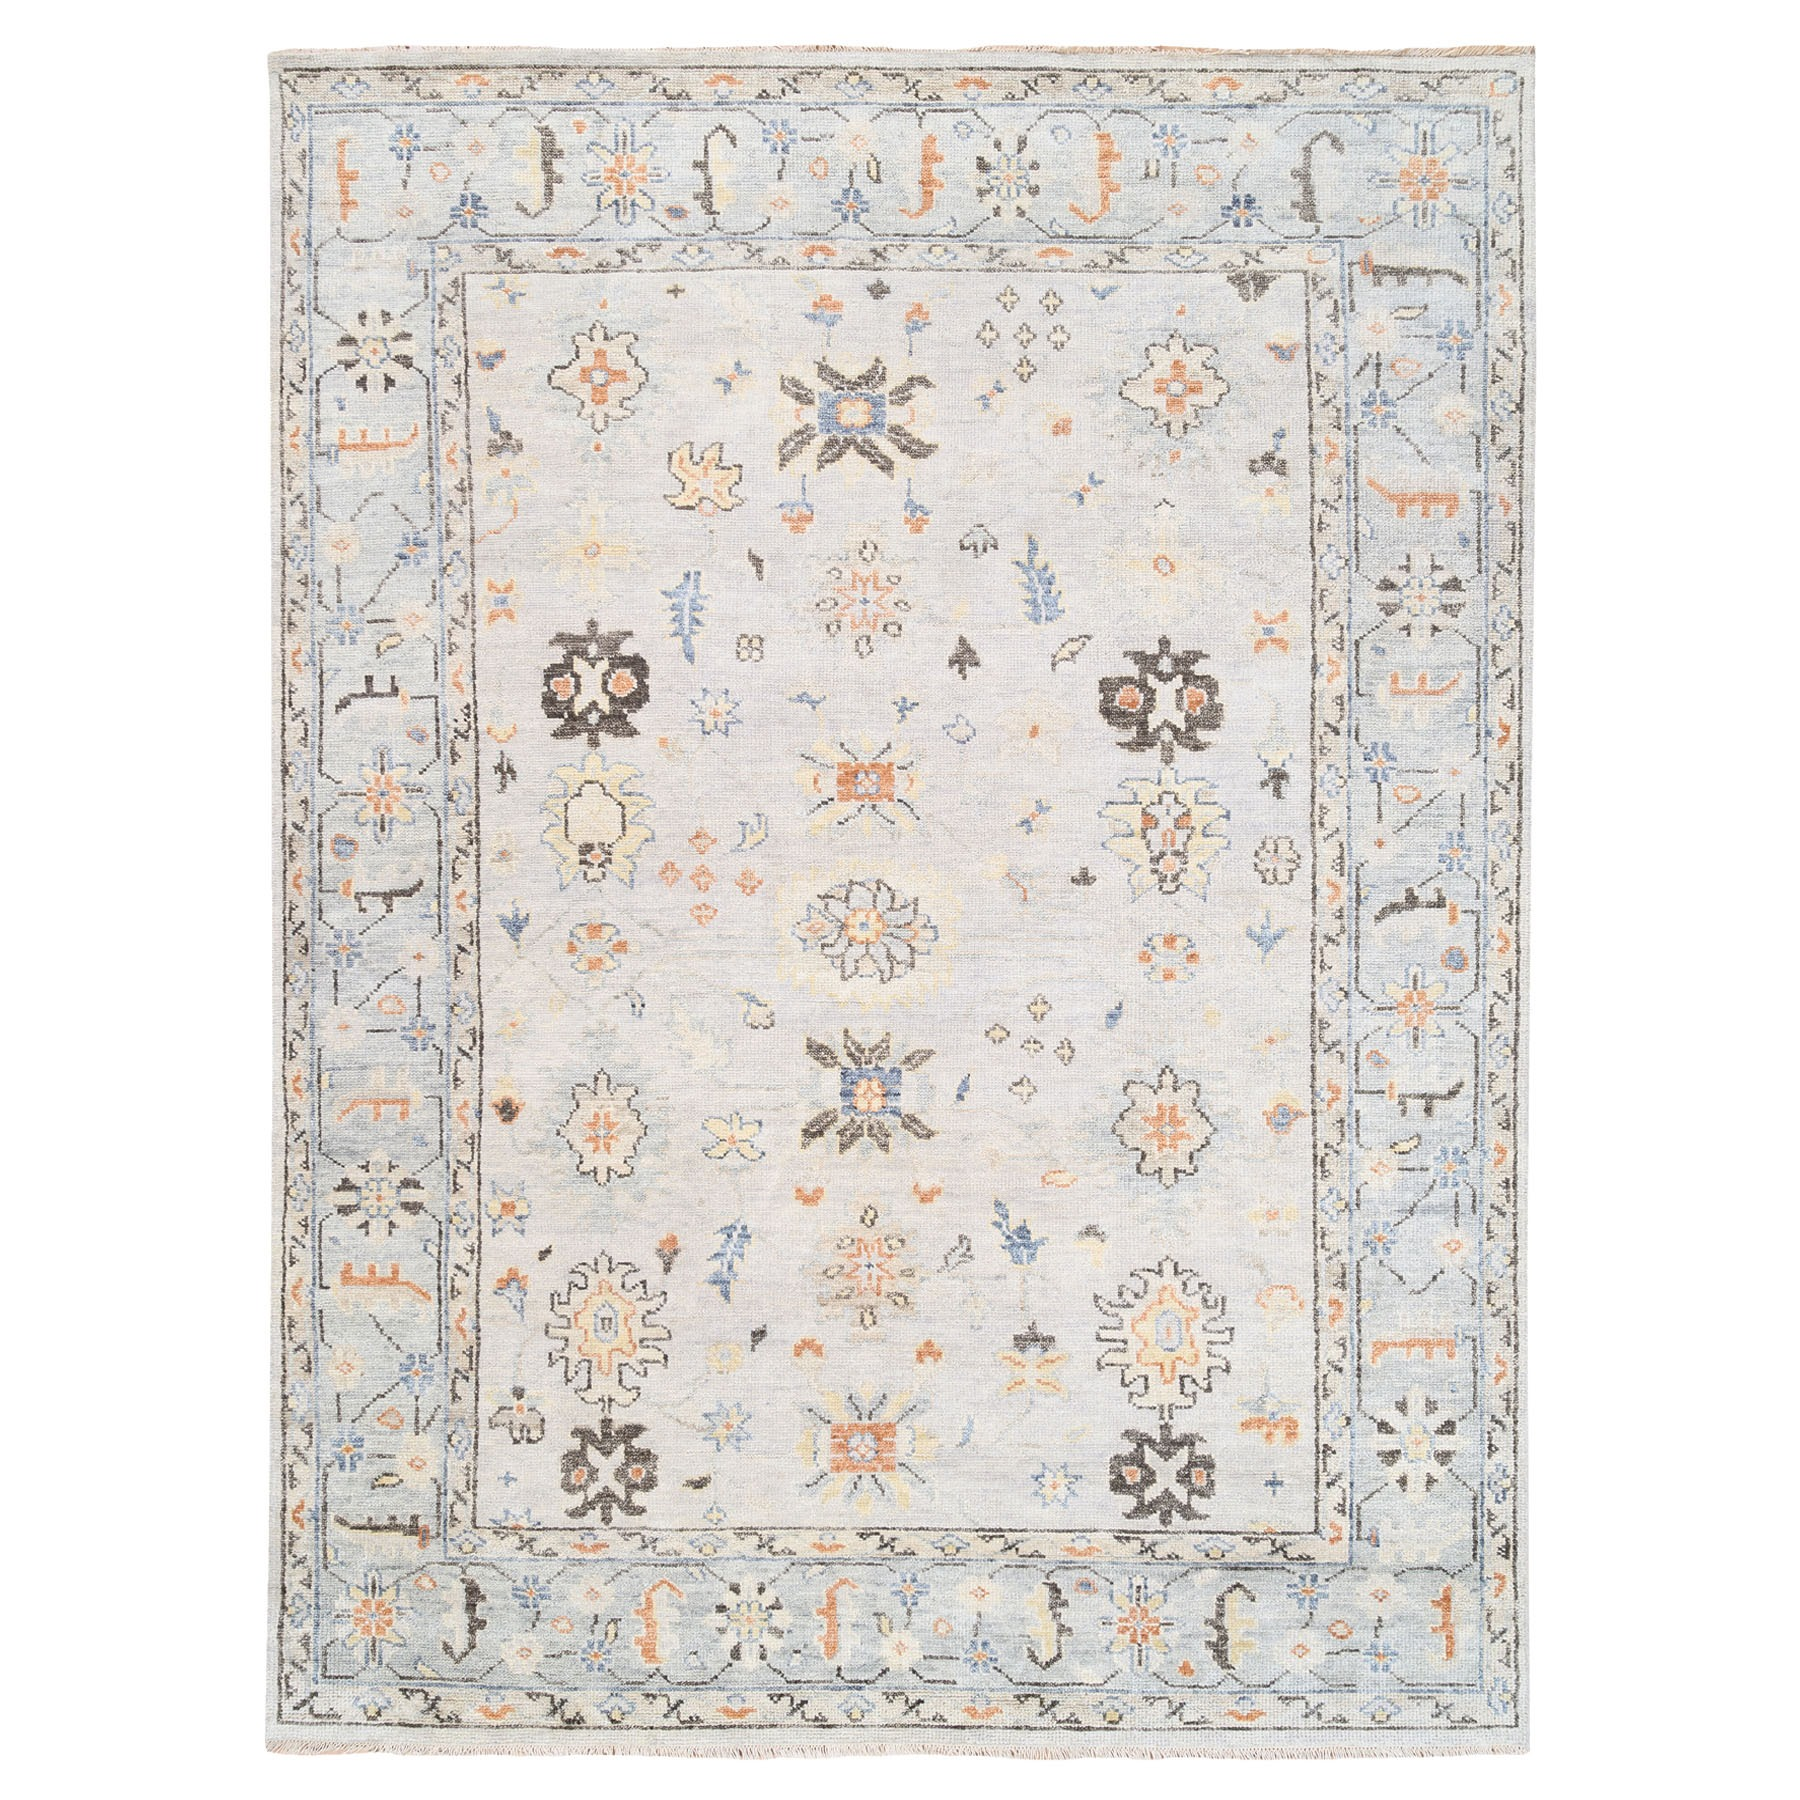 "9'1""x12' Ivory Supple Collection Natural Wool Oushak Design Hand Knotted Oriental Rug"